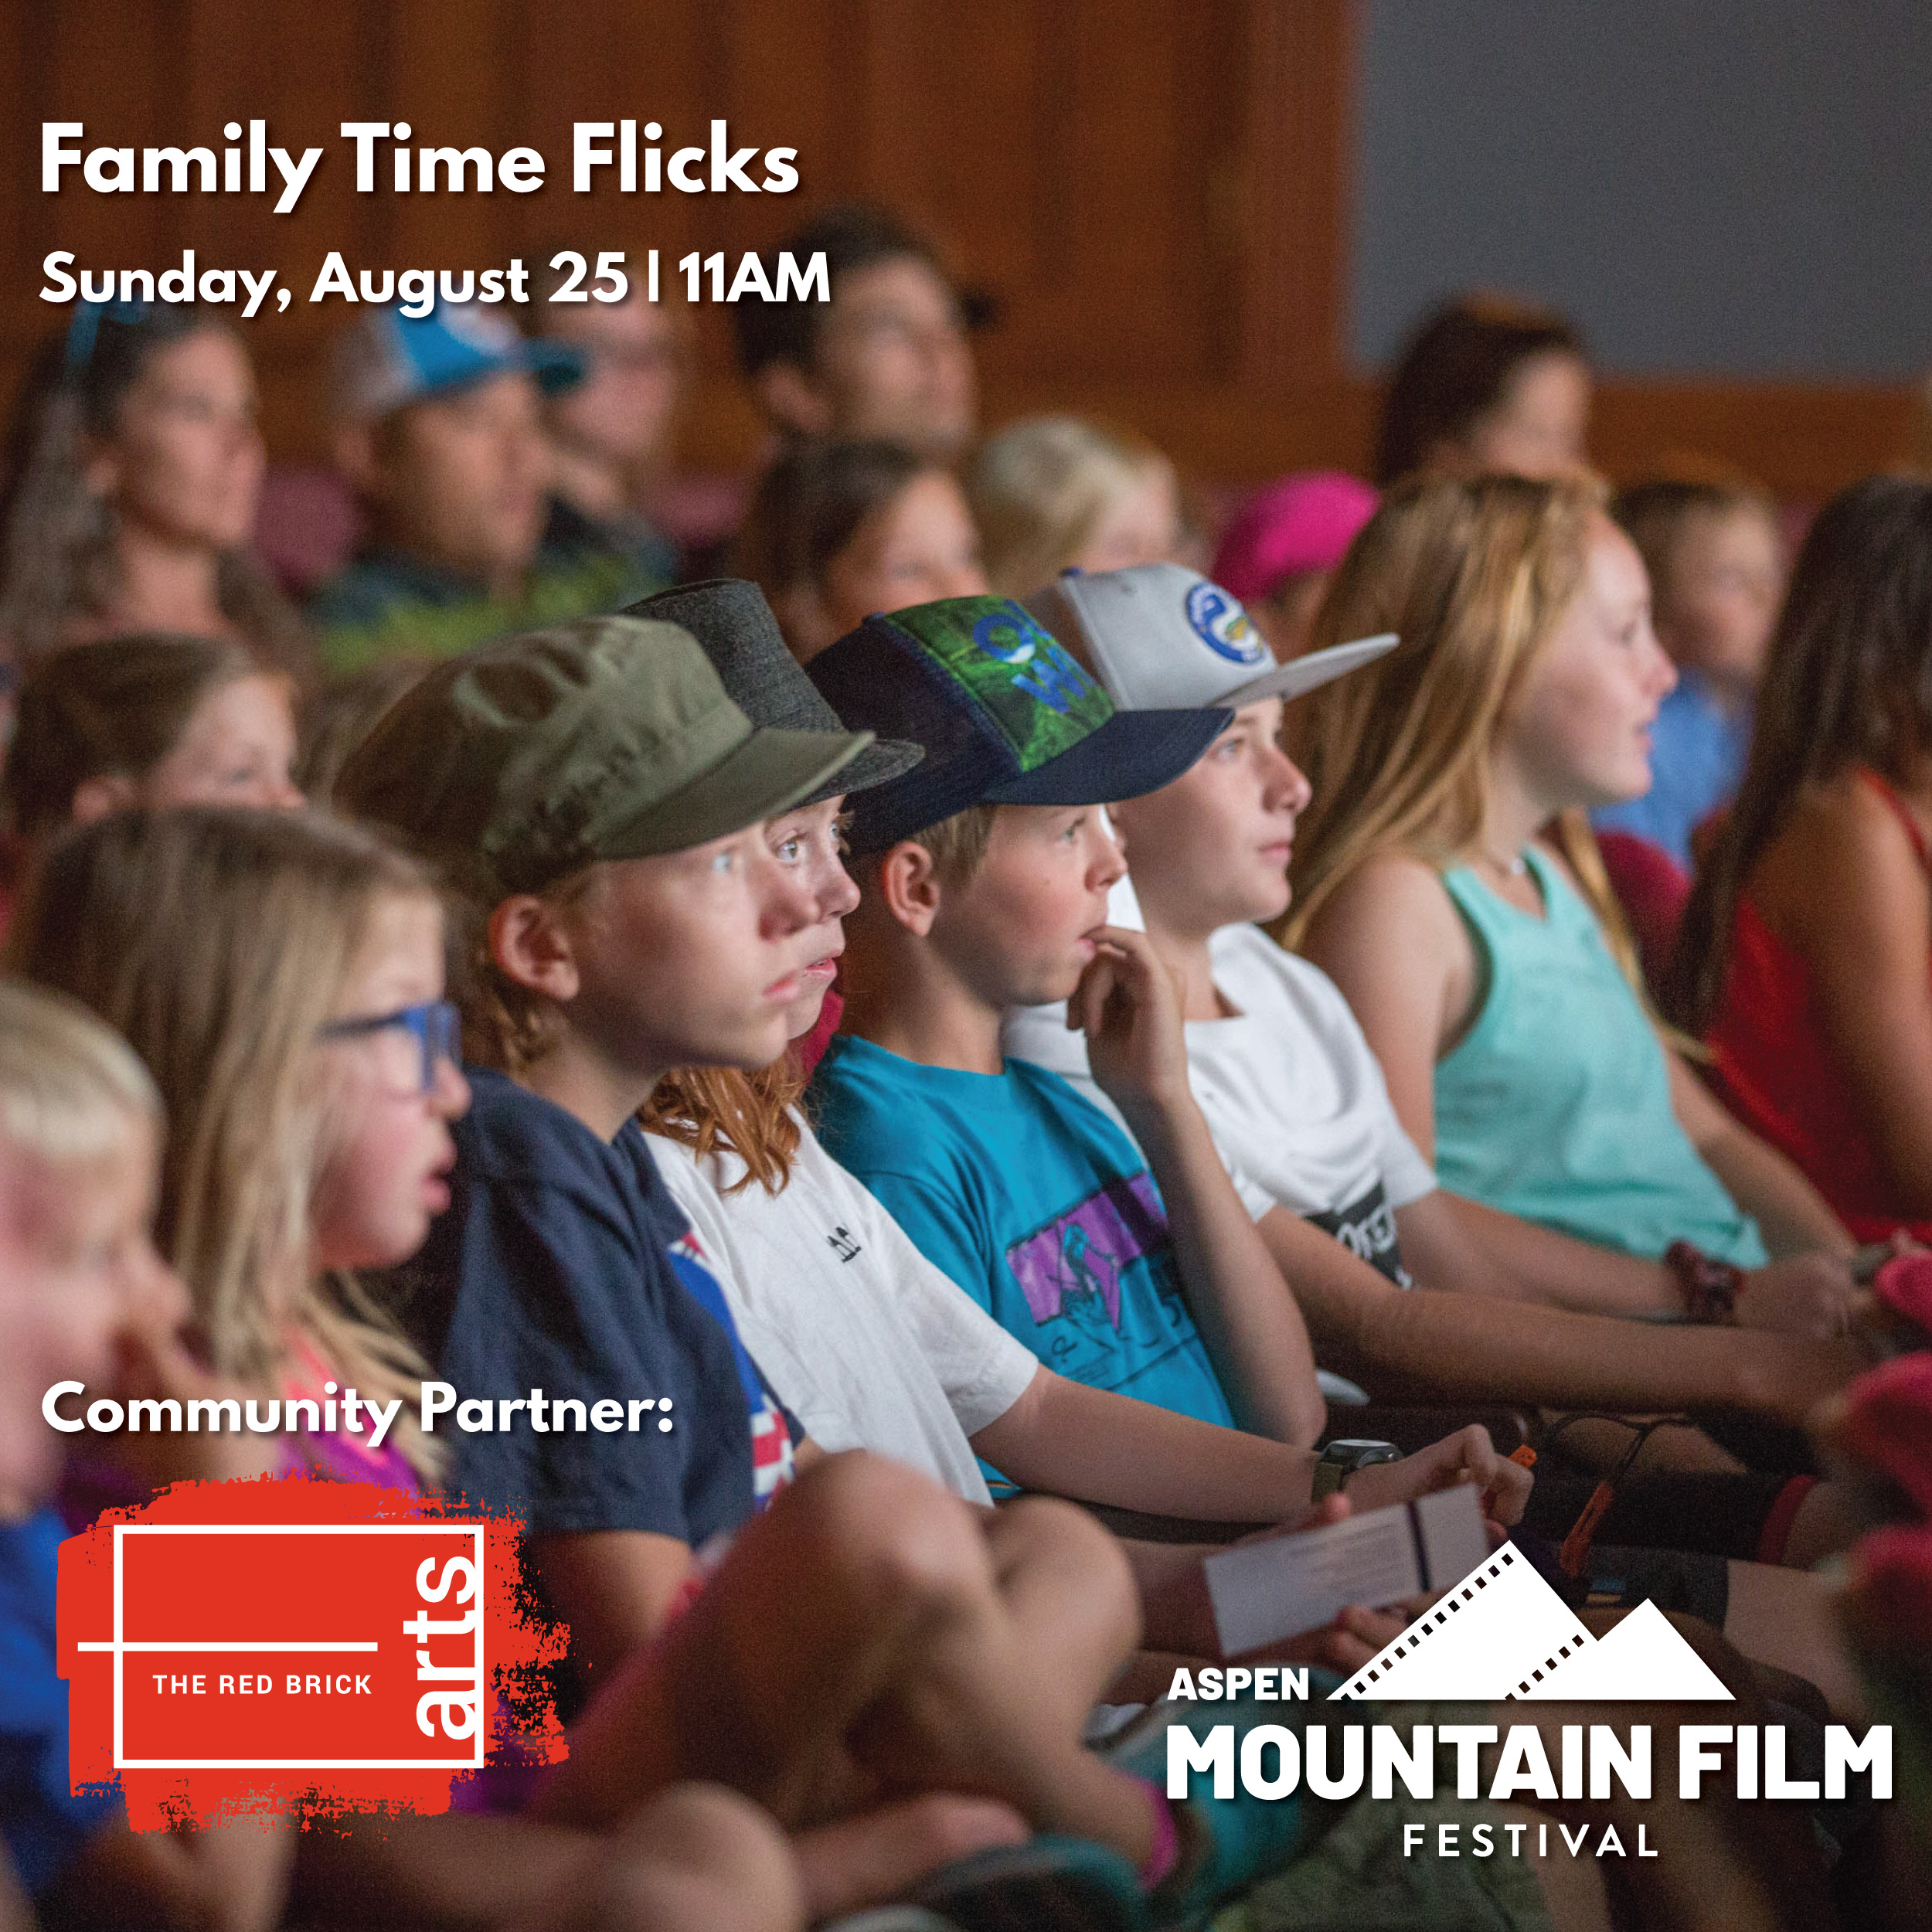 Family-time-flicks-Red-Brick 2019 Wheeler Film adn Art Craft.jpg